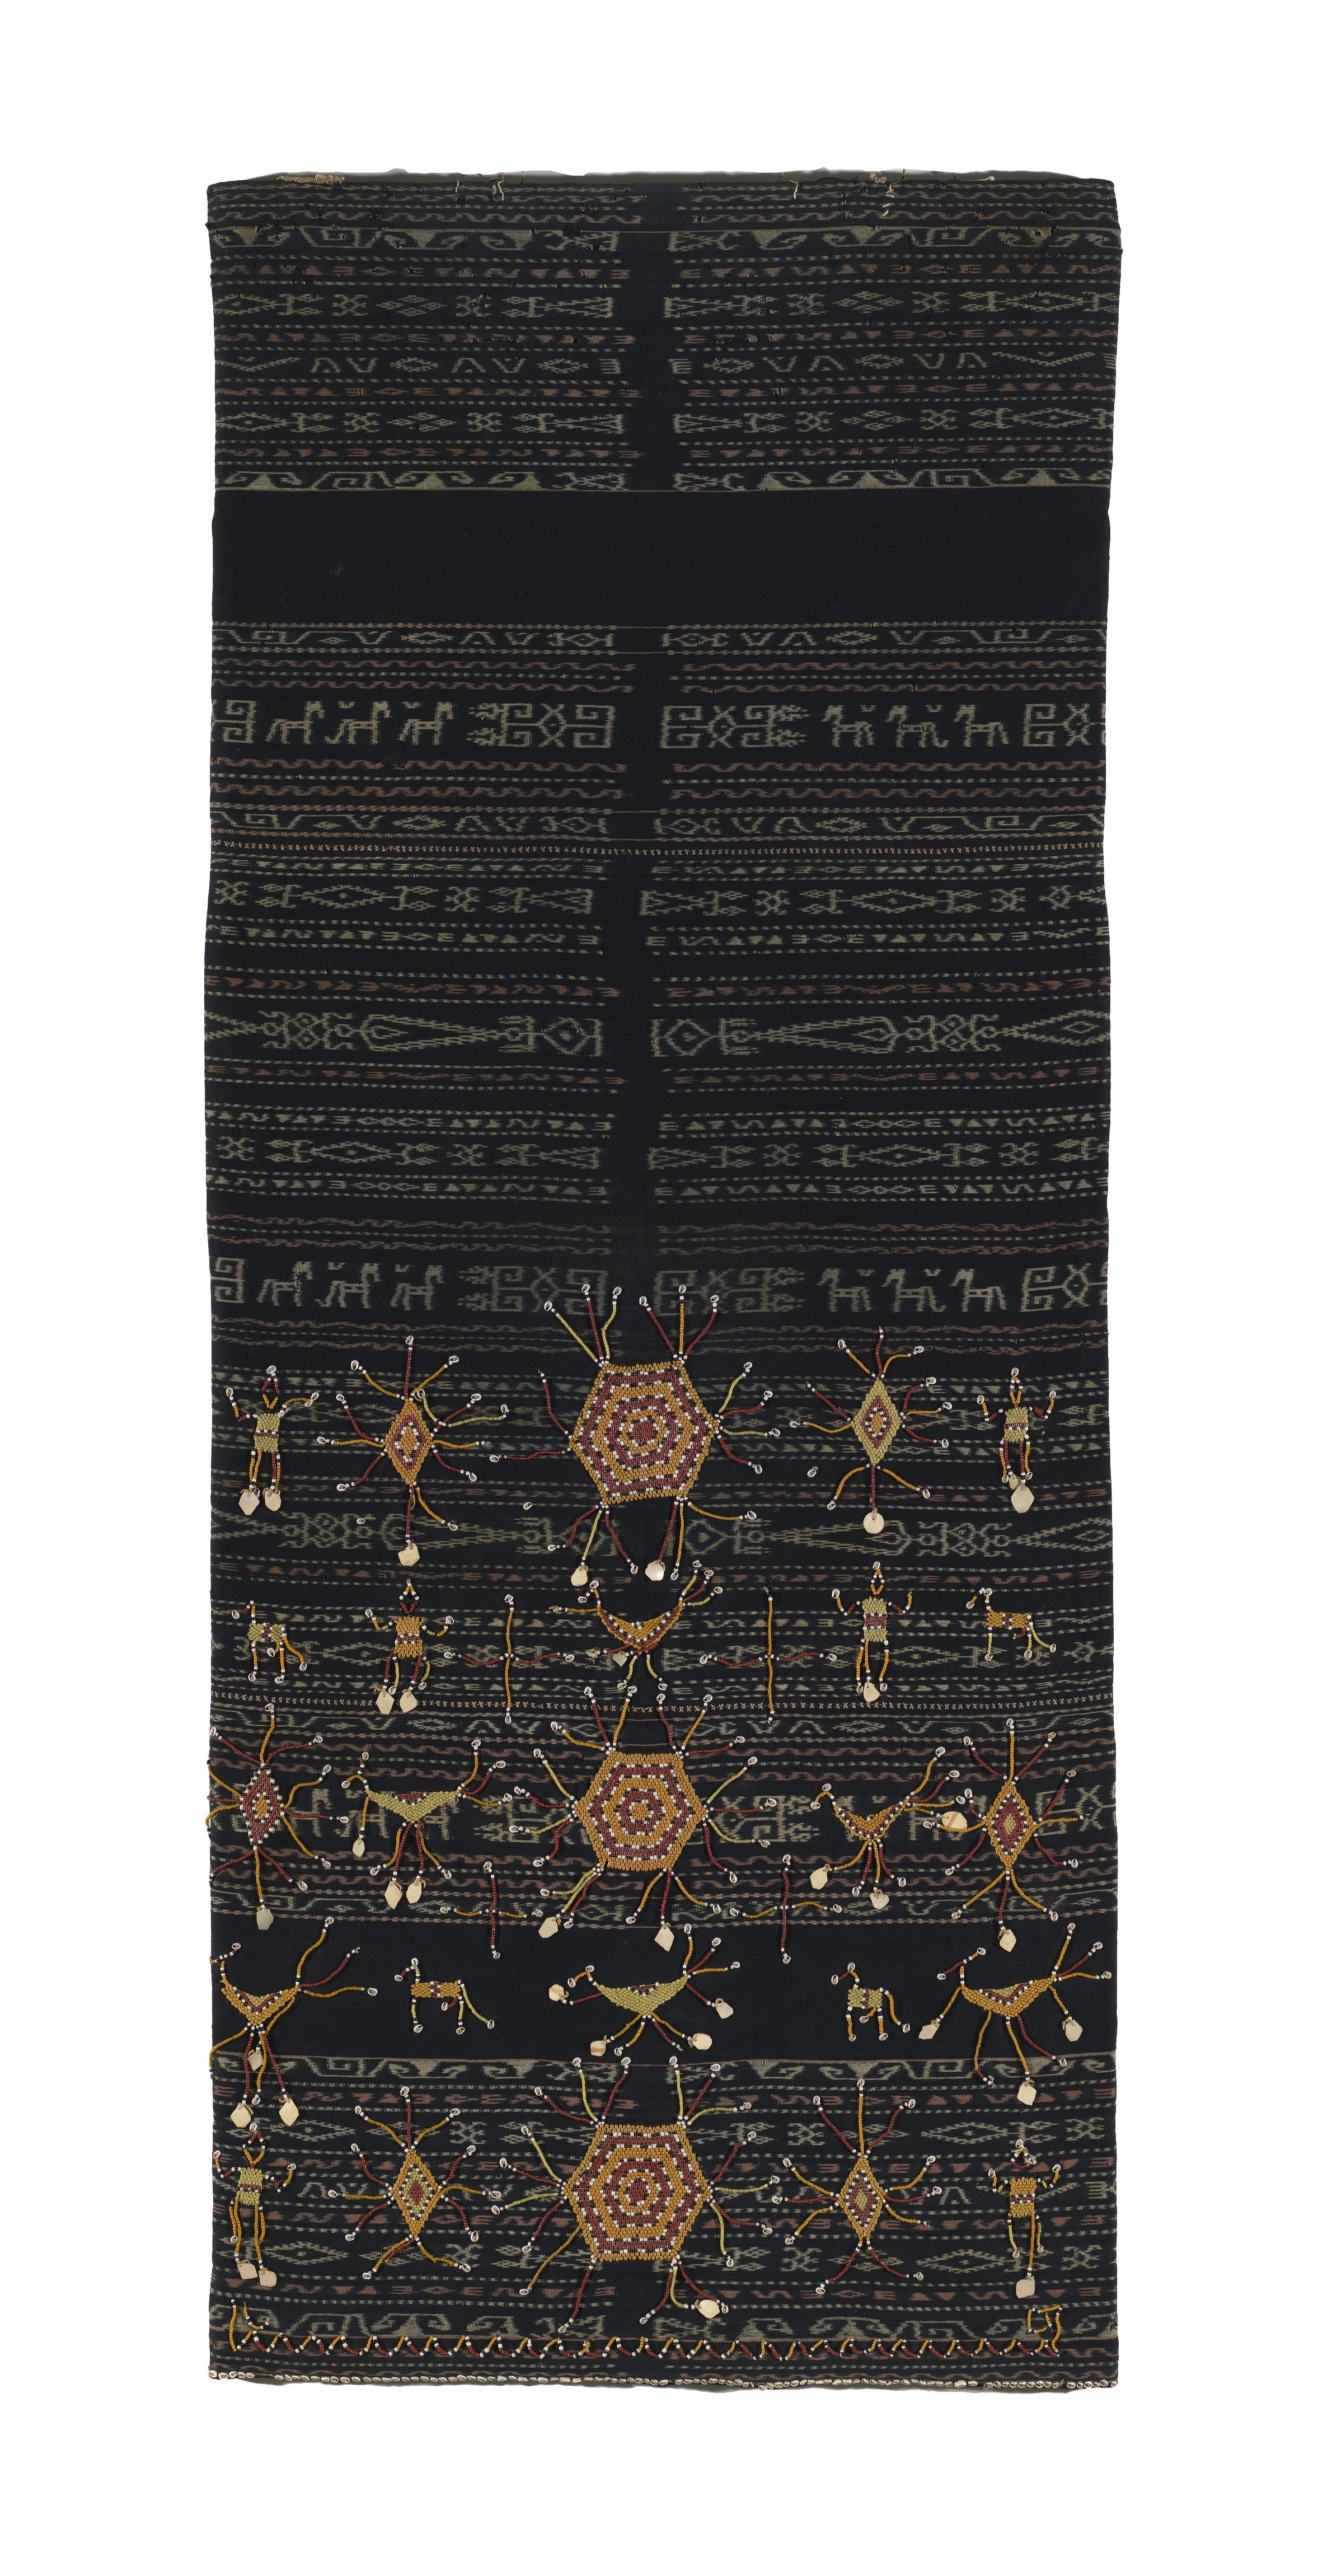 Woman's Ceremonial Skirt |  Lawo Buto  | Ngada People Late 19th Century| Bajawa District, Flores, Indonesia Cotton, Natural Dyes, Beads, Shell, Mother of Pearl Discs, Warp Ikat, Bead-Work, Applique 179.0 (h) x 74.0 (w) cm Purchased 1981 National Gallery of Australia | 1981.1141